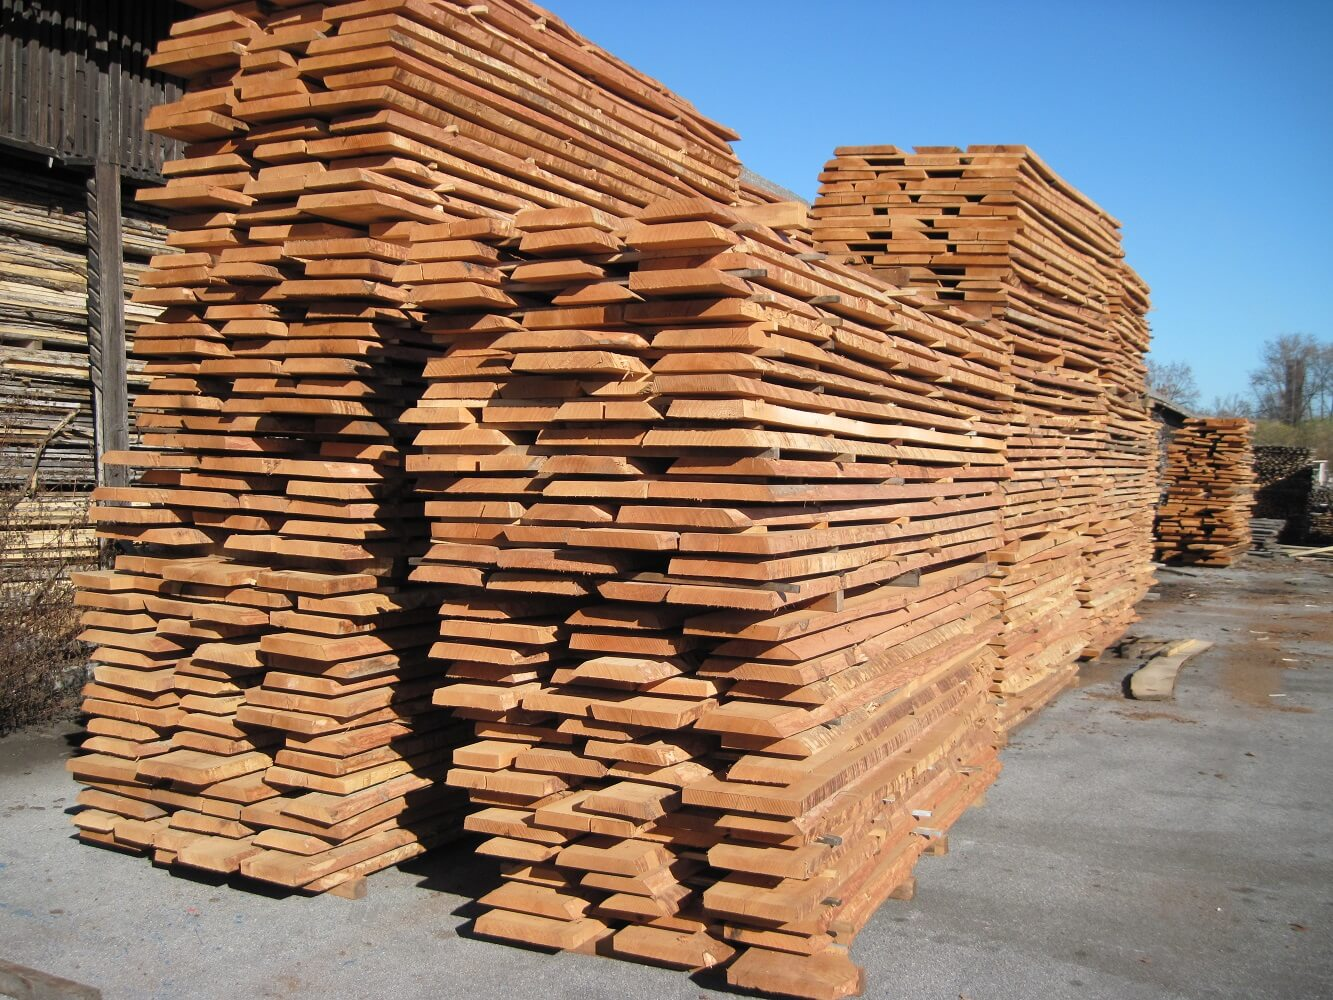 Image via Unedged beech lumber / timber - Mijatovic Ltd wood supplier https://www.mijatovicltd.com/wood-products/unedged-beech-lumber